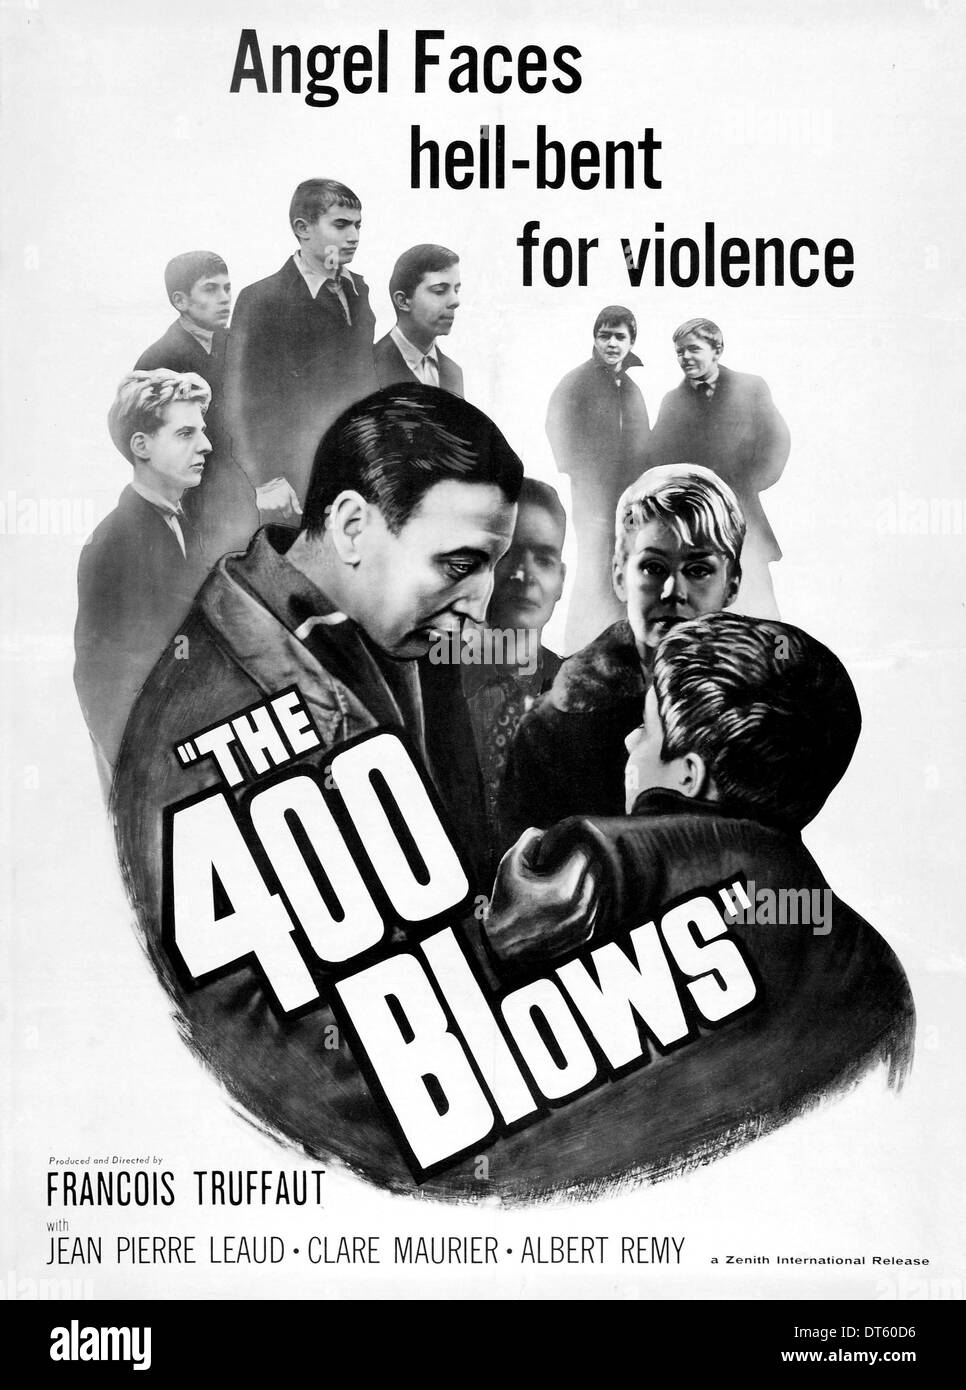 Movie poster the 400 blows les quatre cents coups 1959 stock photo royalty free image - Cinema chatellerault les 400 coups ...